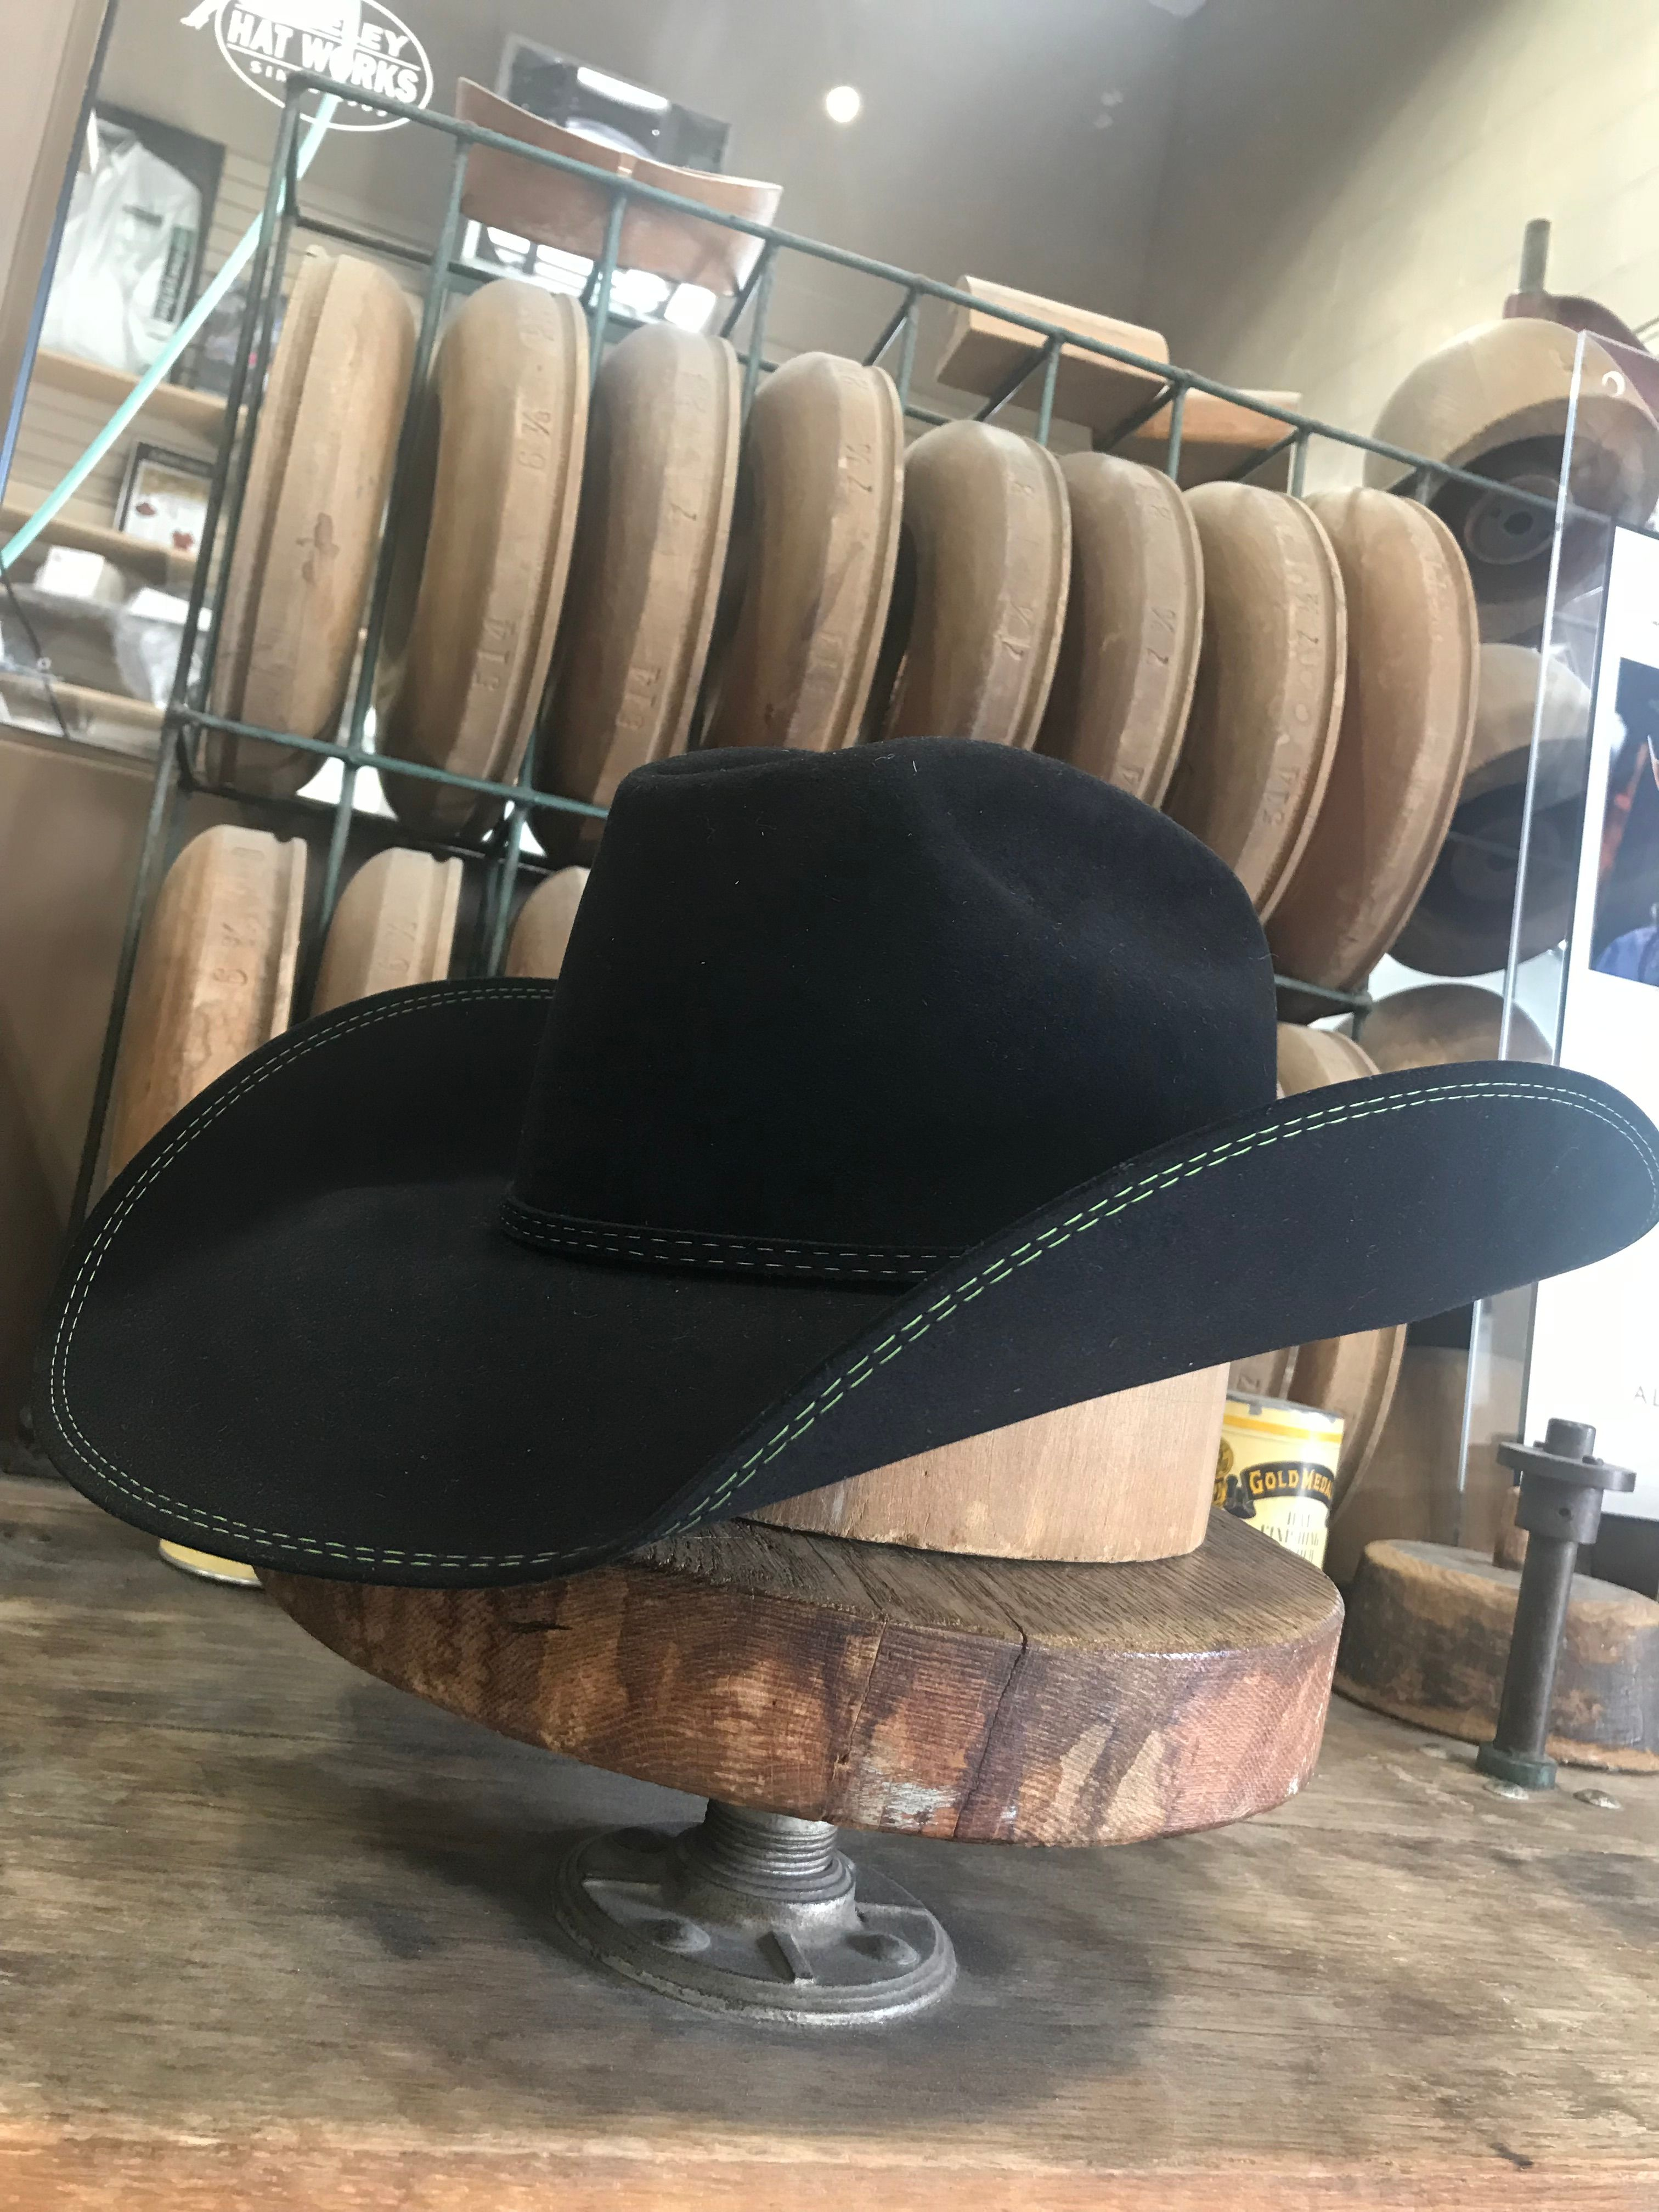 Happy Shipping Out A Brand New Custom Today Man This Is The Best Feeling In The World Specs Pure Beaver B Cowboy Hats Greeley Hat Works Cowboy Hat Styles